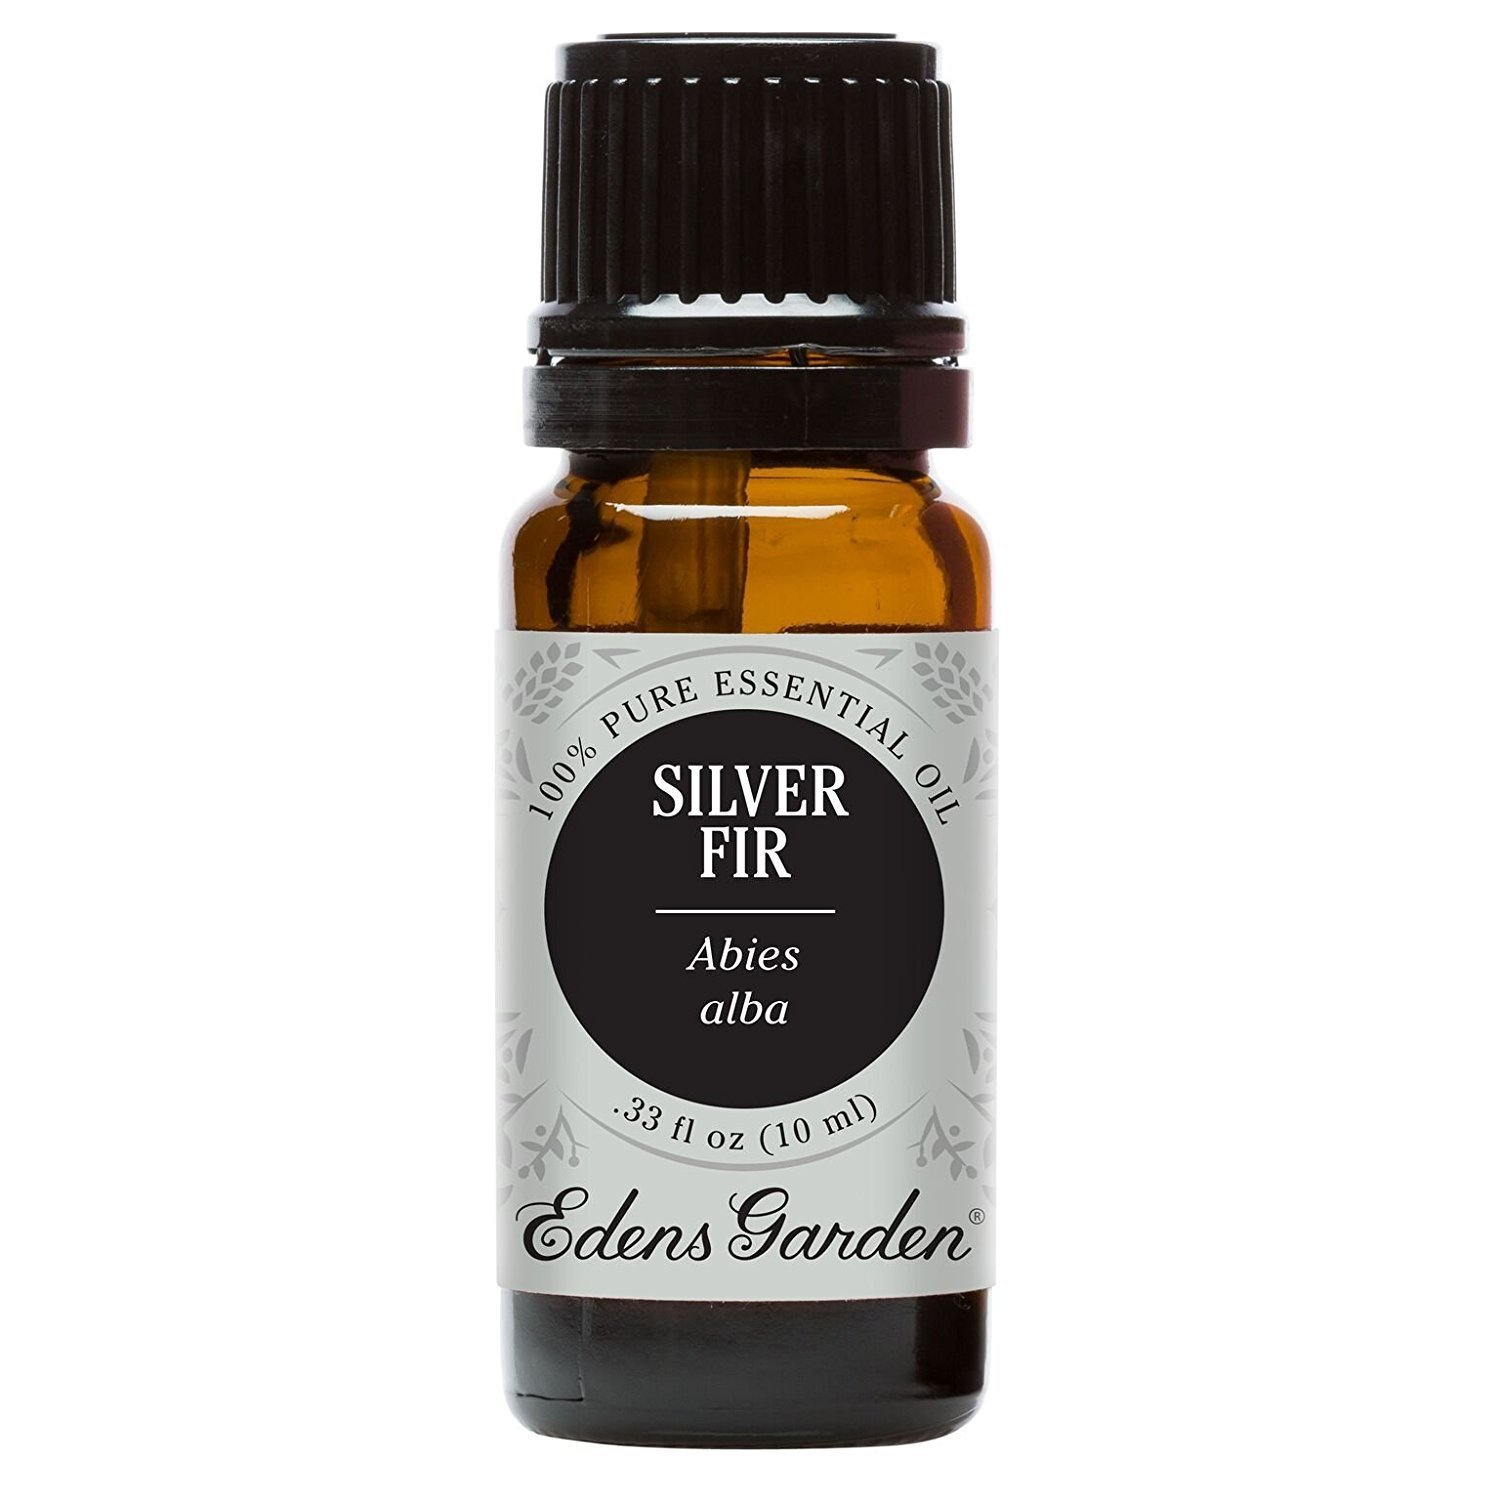 Silver Fir Essential Oil (100% Pure, Undiluted Therapeutic/Best Grade) High Quality Premium Aromatherapy Oils by Edens Garden- 10 ml